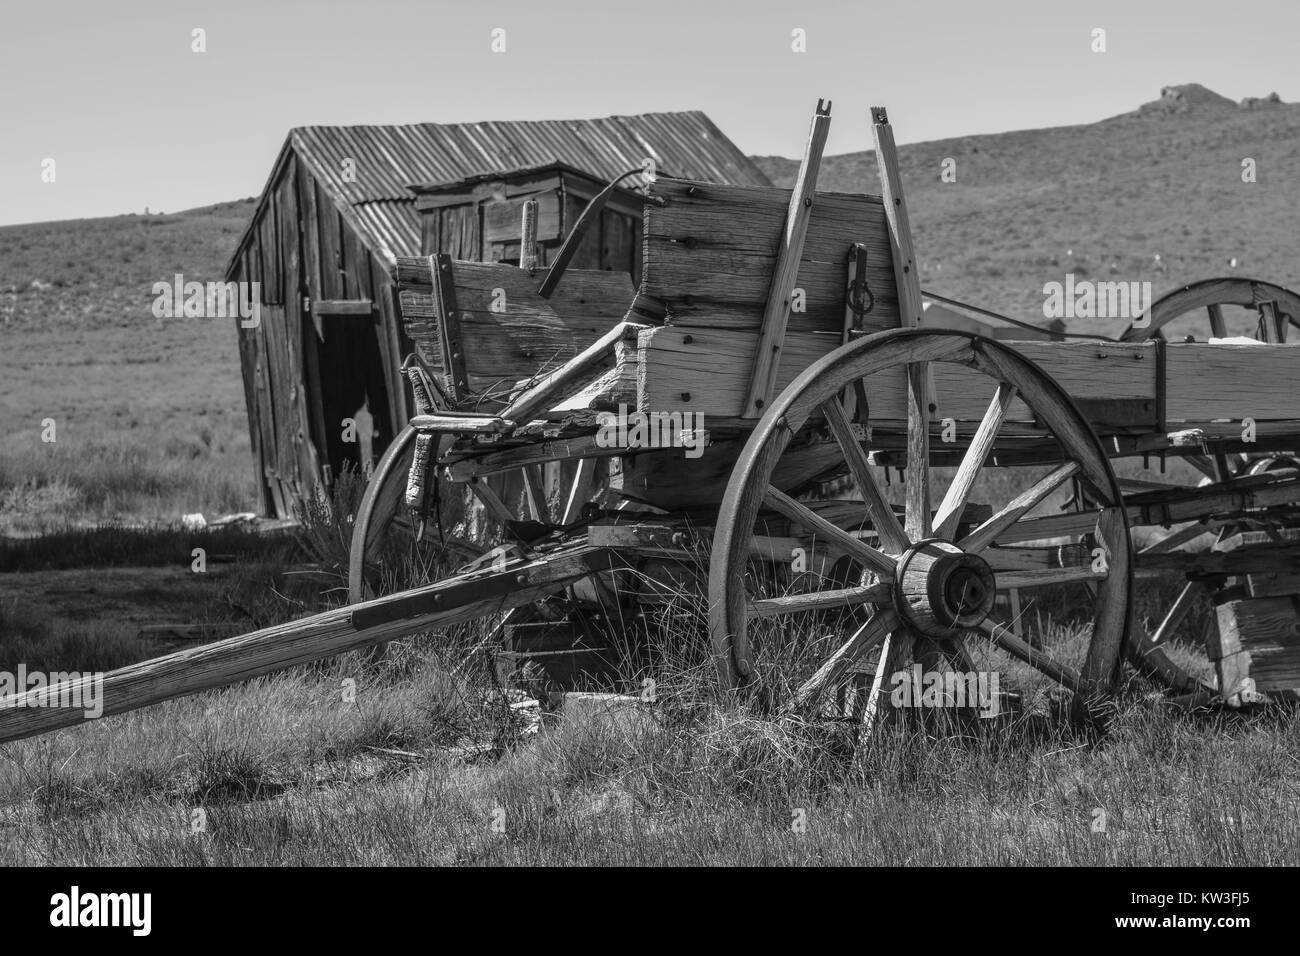 A black and white shot of an old wagon and an outhouse, with hills and shrubs, in the historic town, Bodie - Stock Image